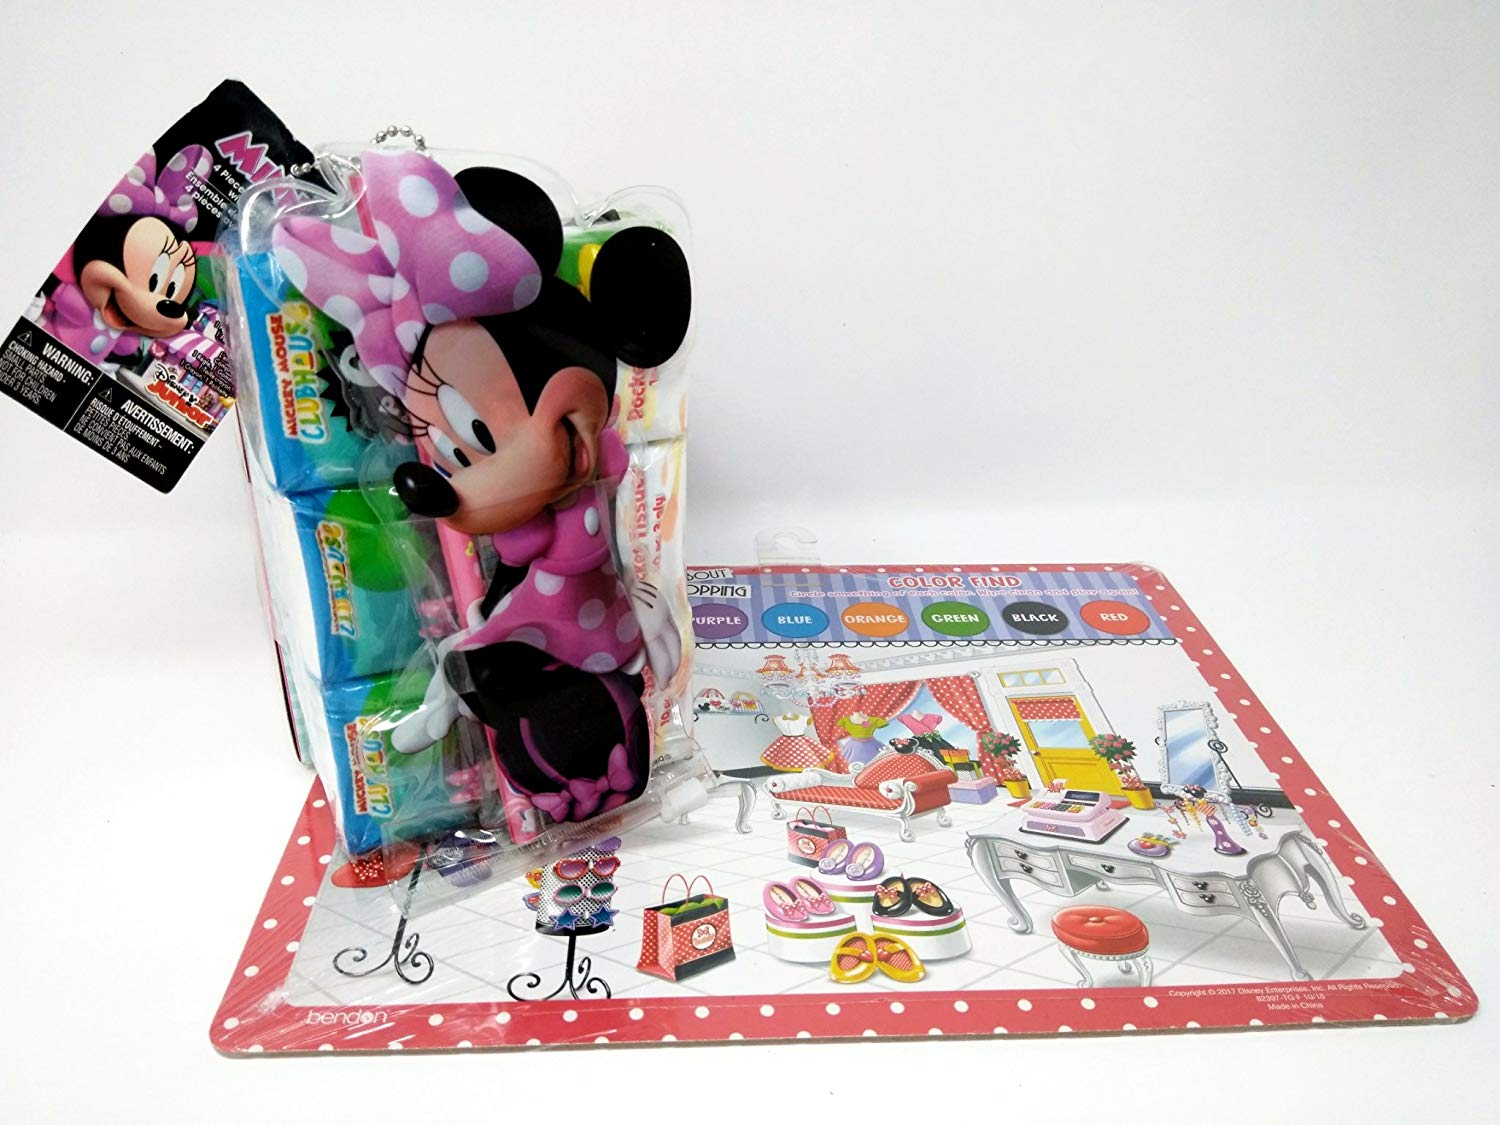 Back to School Toddler Pre-school Elementary School Supplies Pencil Sharpener Dry Erase Board Tissues Minnie Mouse Bundle of 3